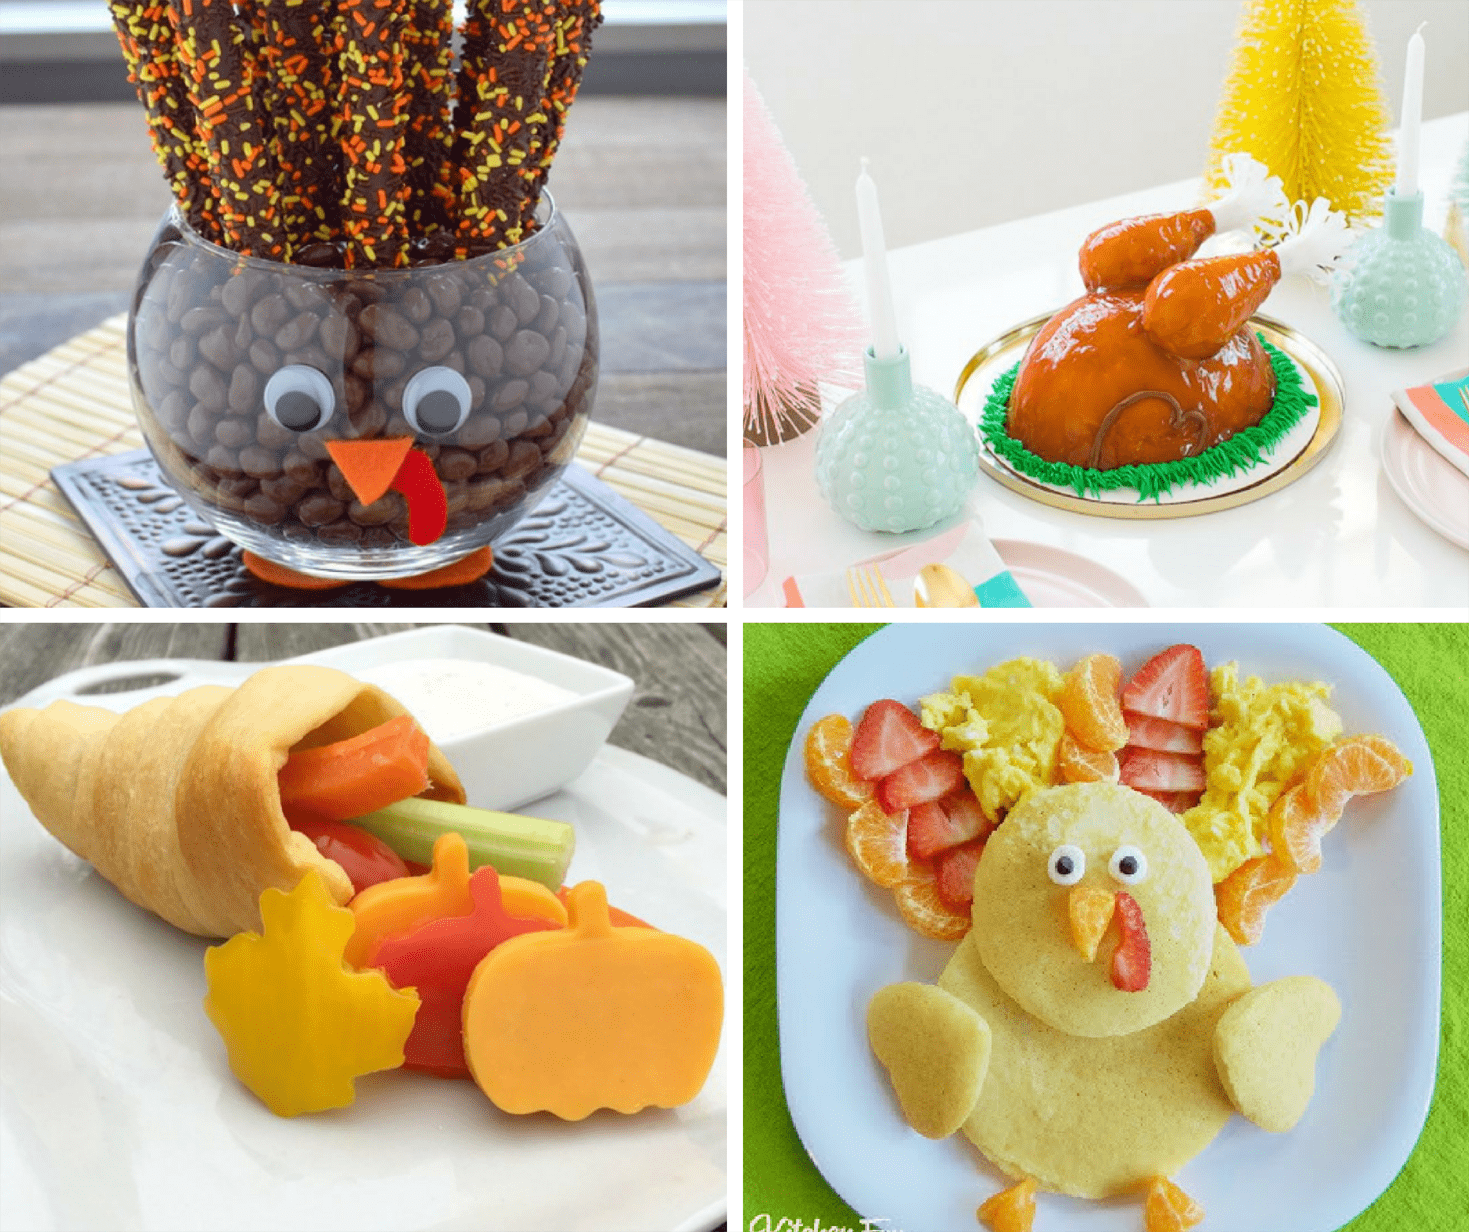 30 fun food ideas for Thanksgiving